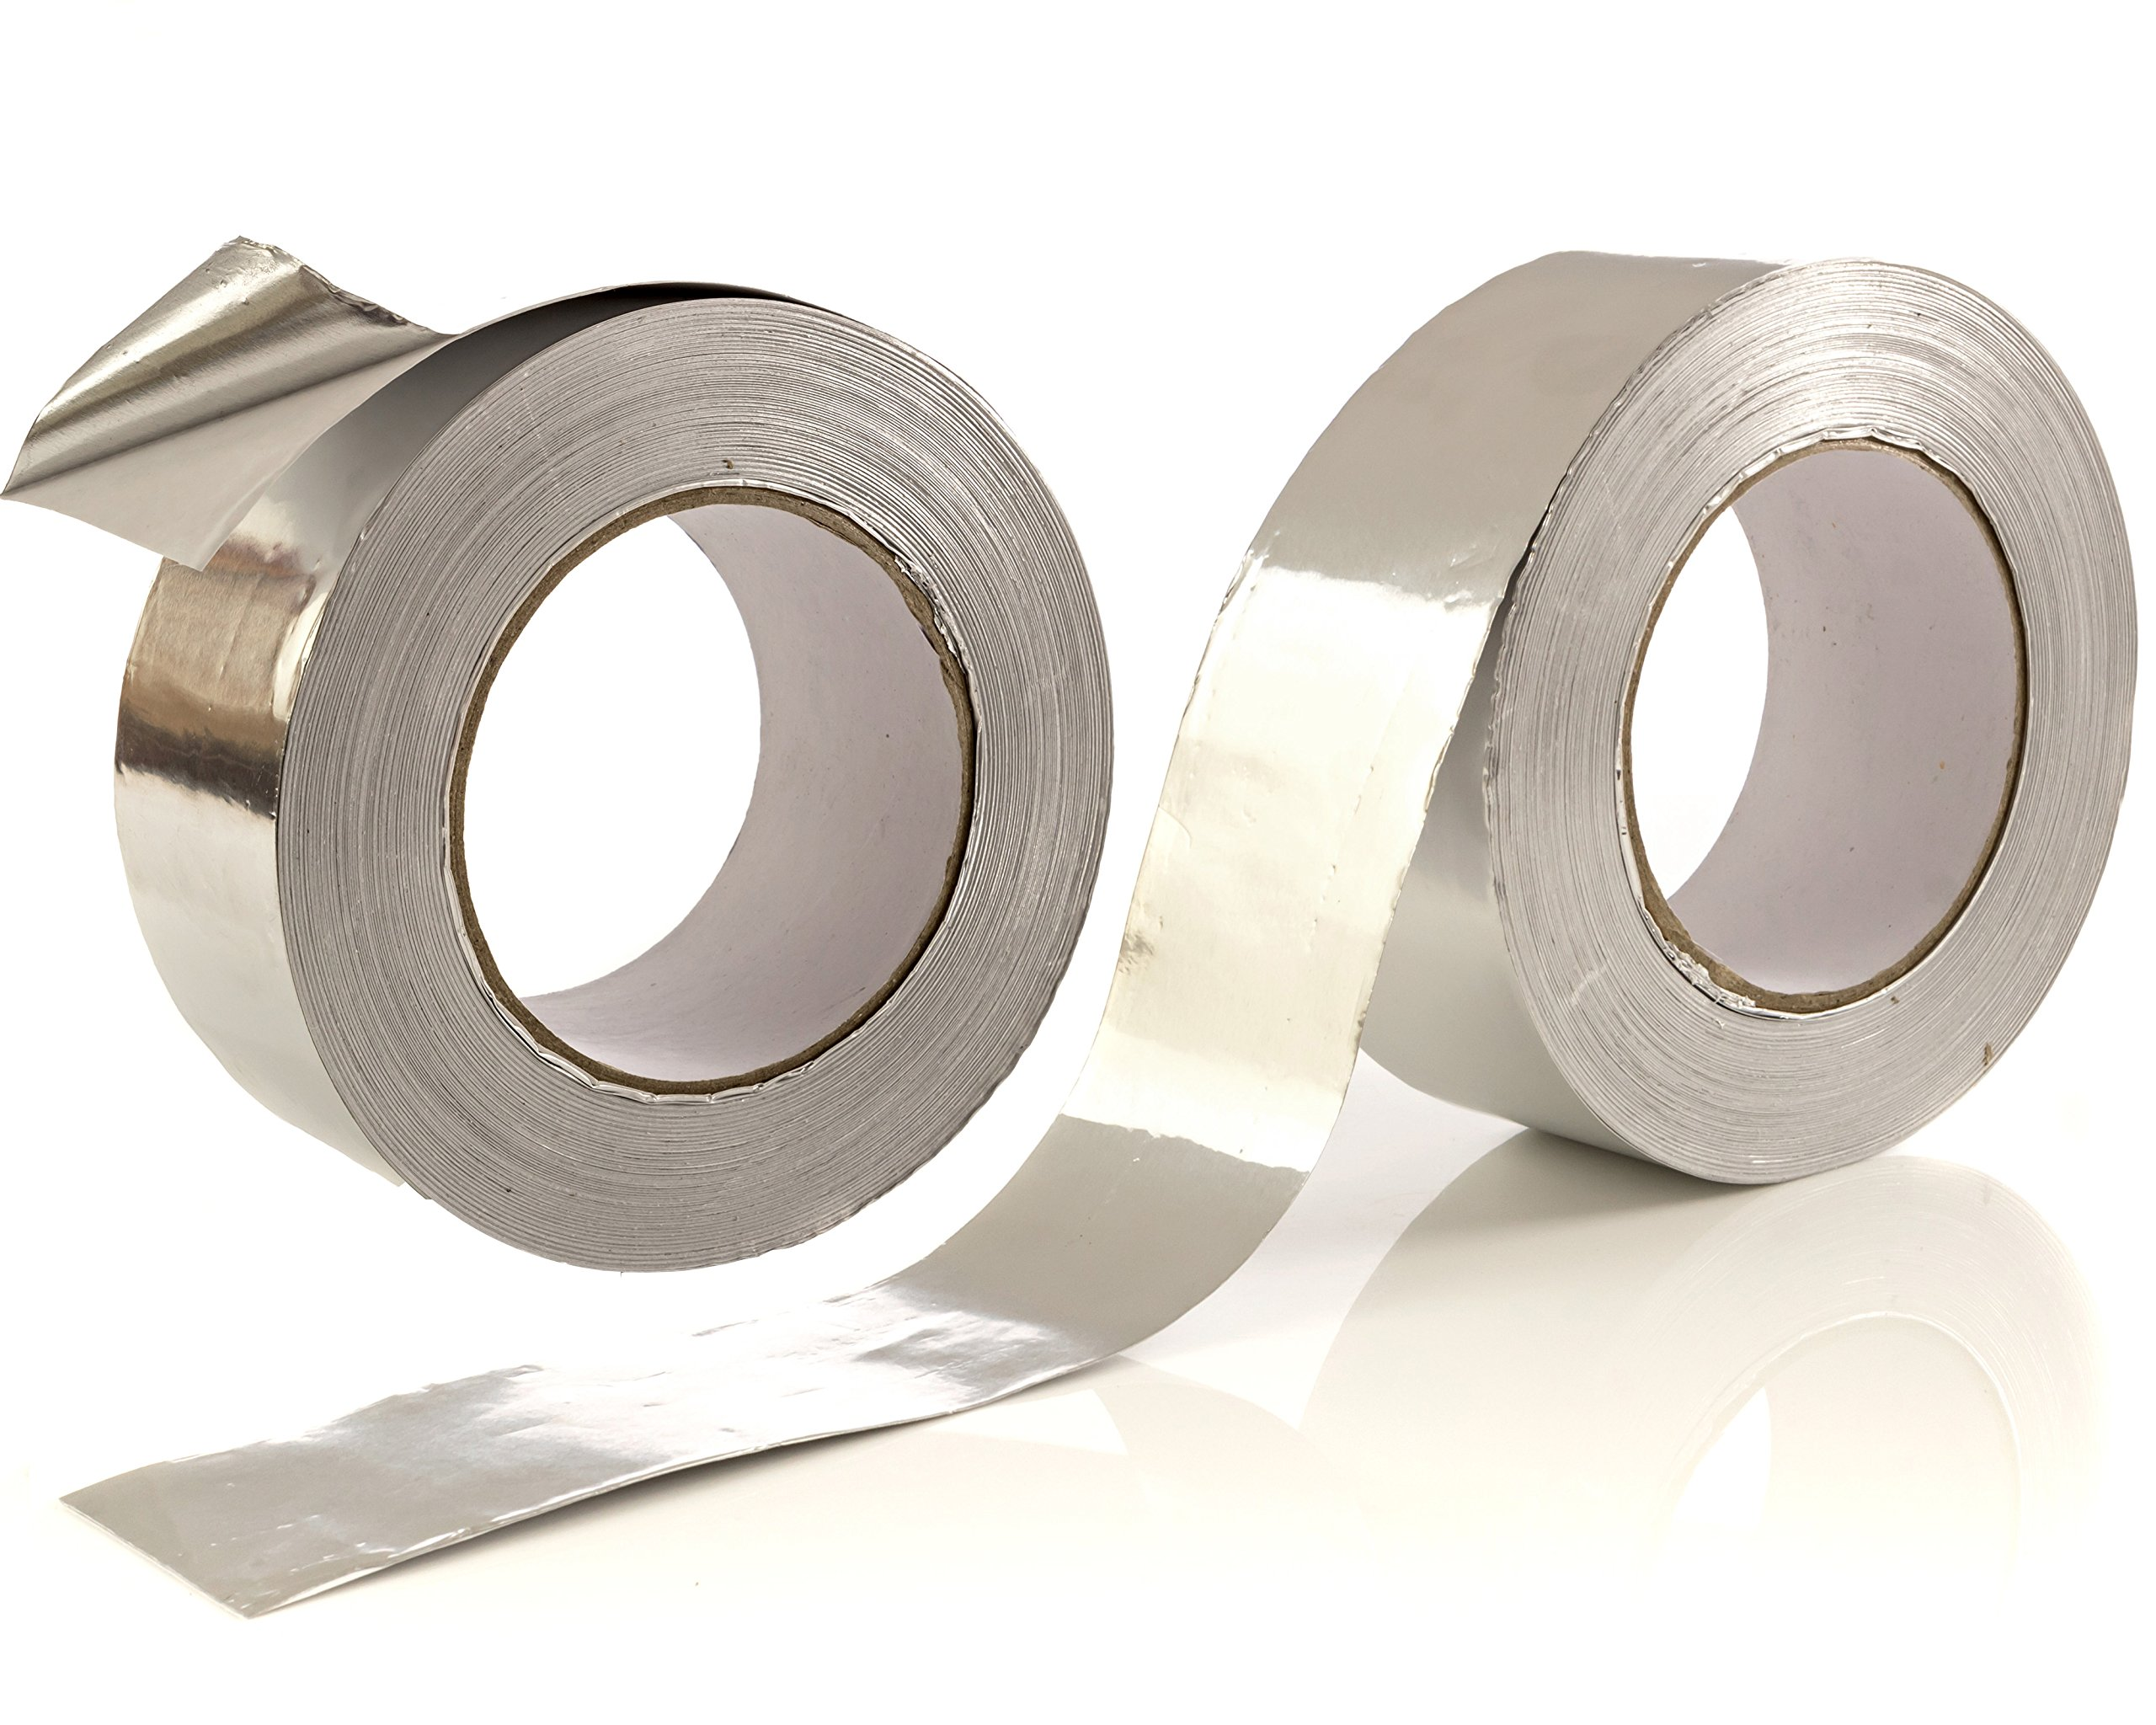 2-Pack Aluminum Tape / Aluminum Foil Tape - 1.9 inch x 150 feet (3.4 mil) Per Roll - Good for HVAC, Ducts, Insulation and More by Impresa Products